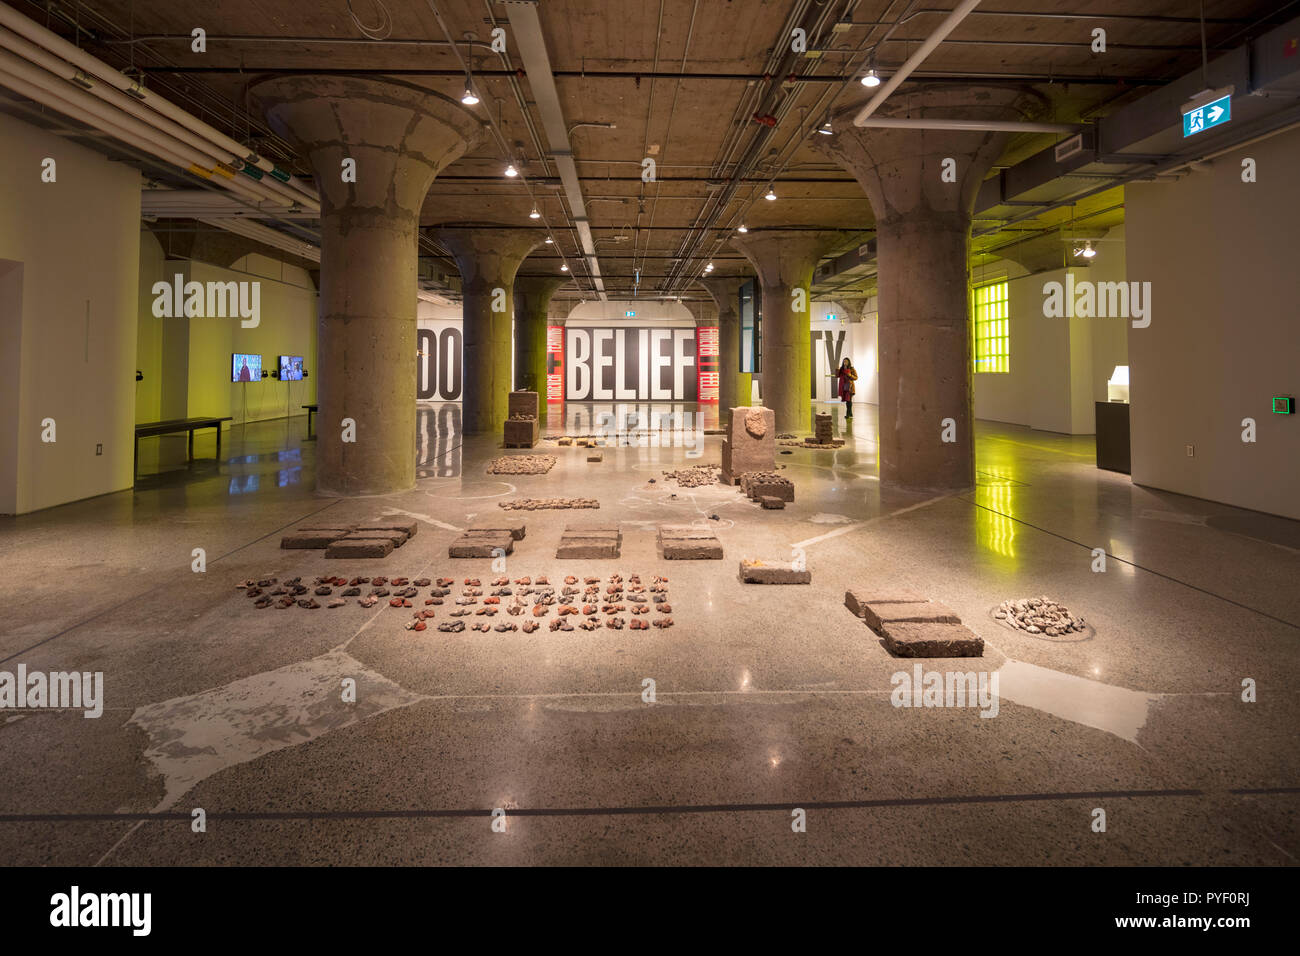 BELIEVE (group exhibition) at The Museum of Contemporary Art, Toronto, Canada - Stock Image